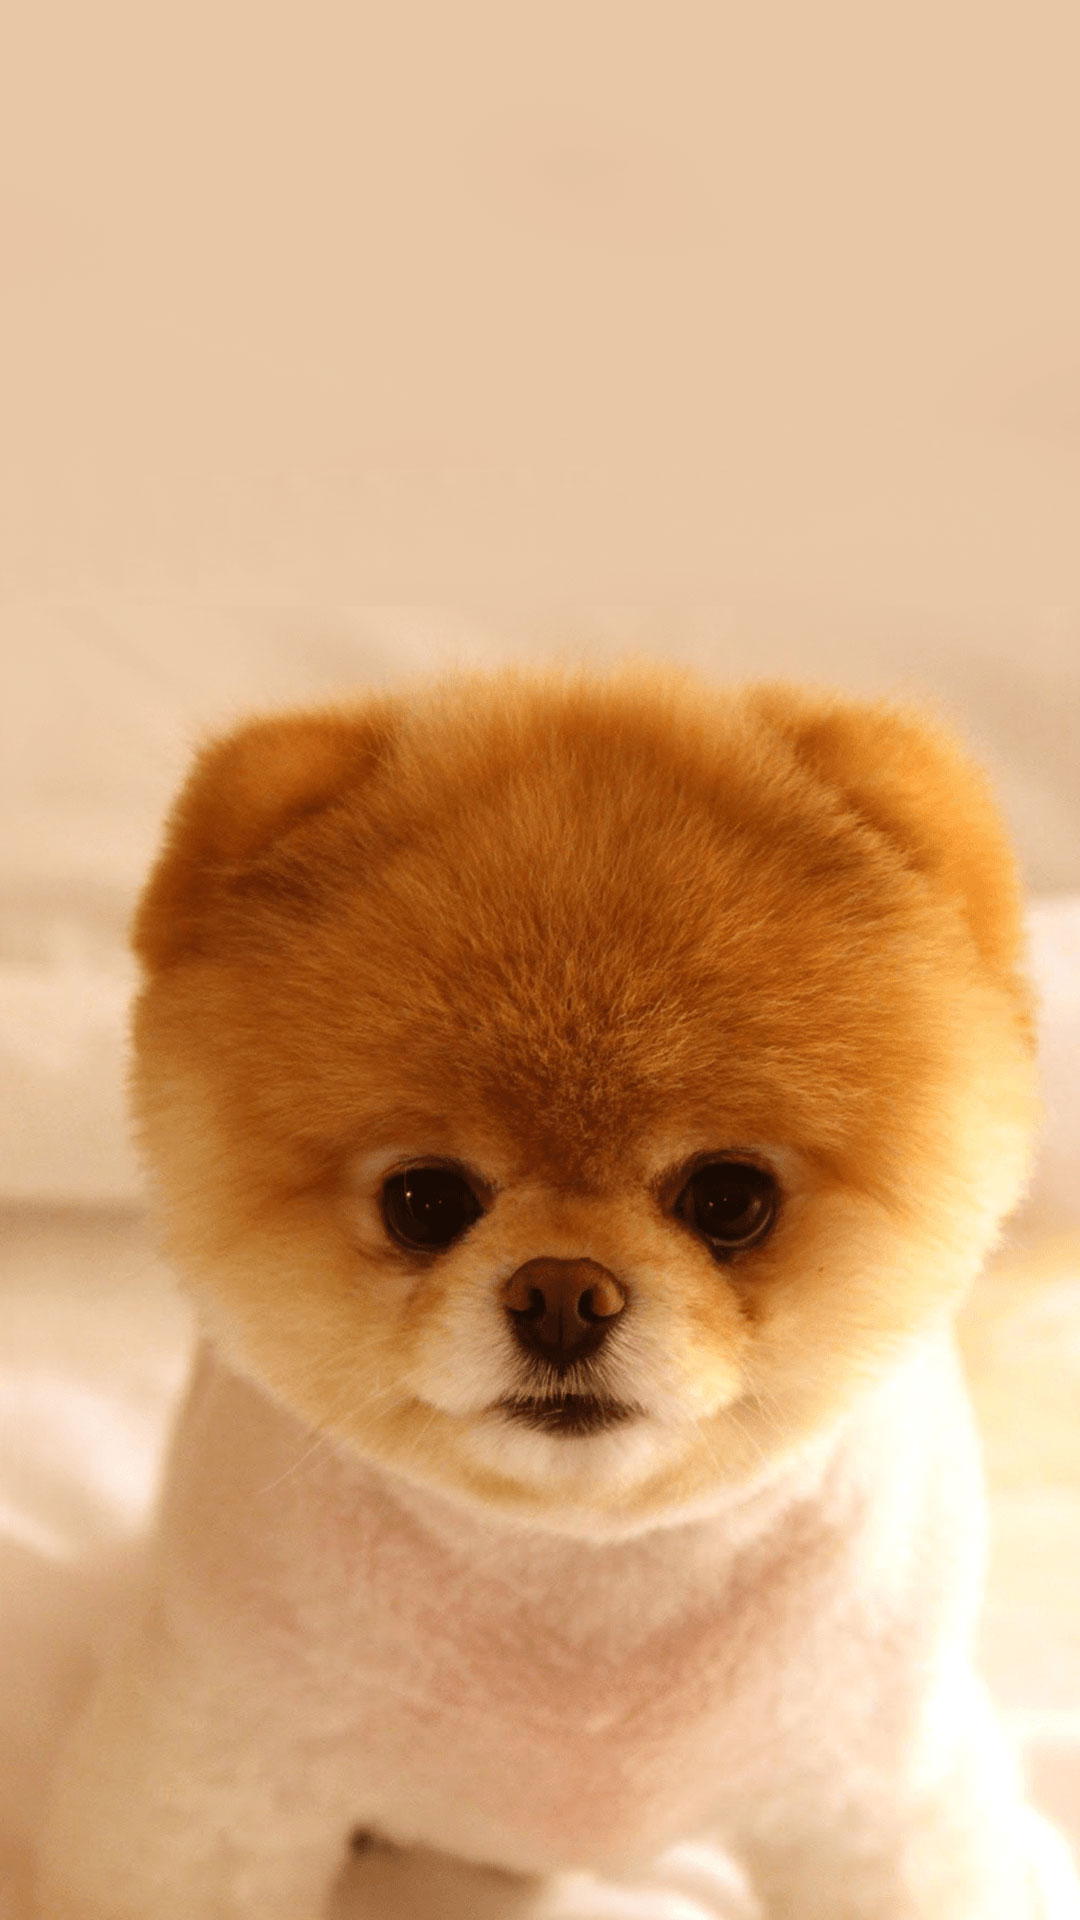 Baby Dog Wallpaper For Iphone Kolpaper Awesome Free Hd Wallpapers